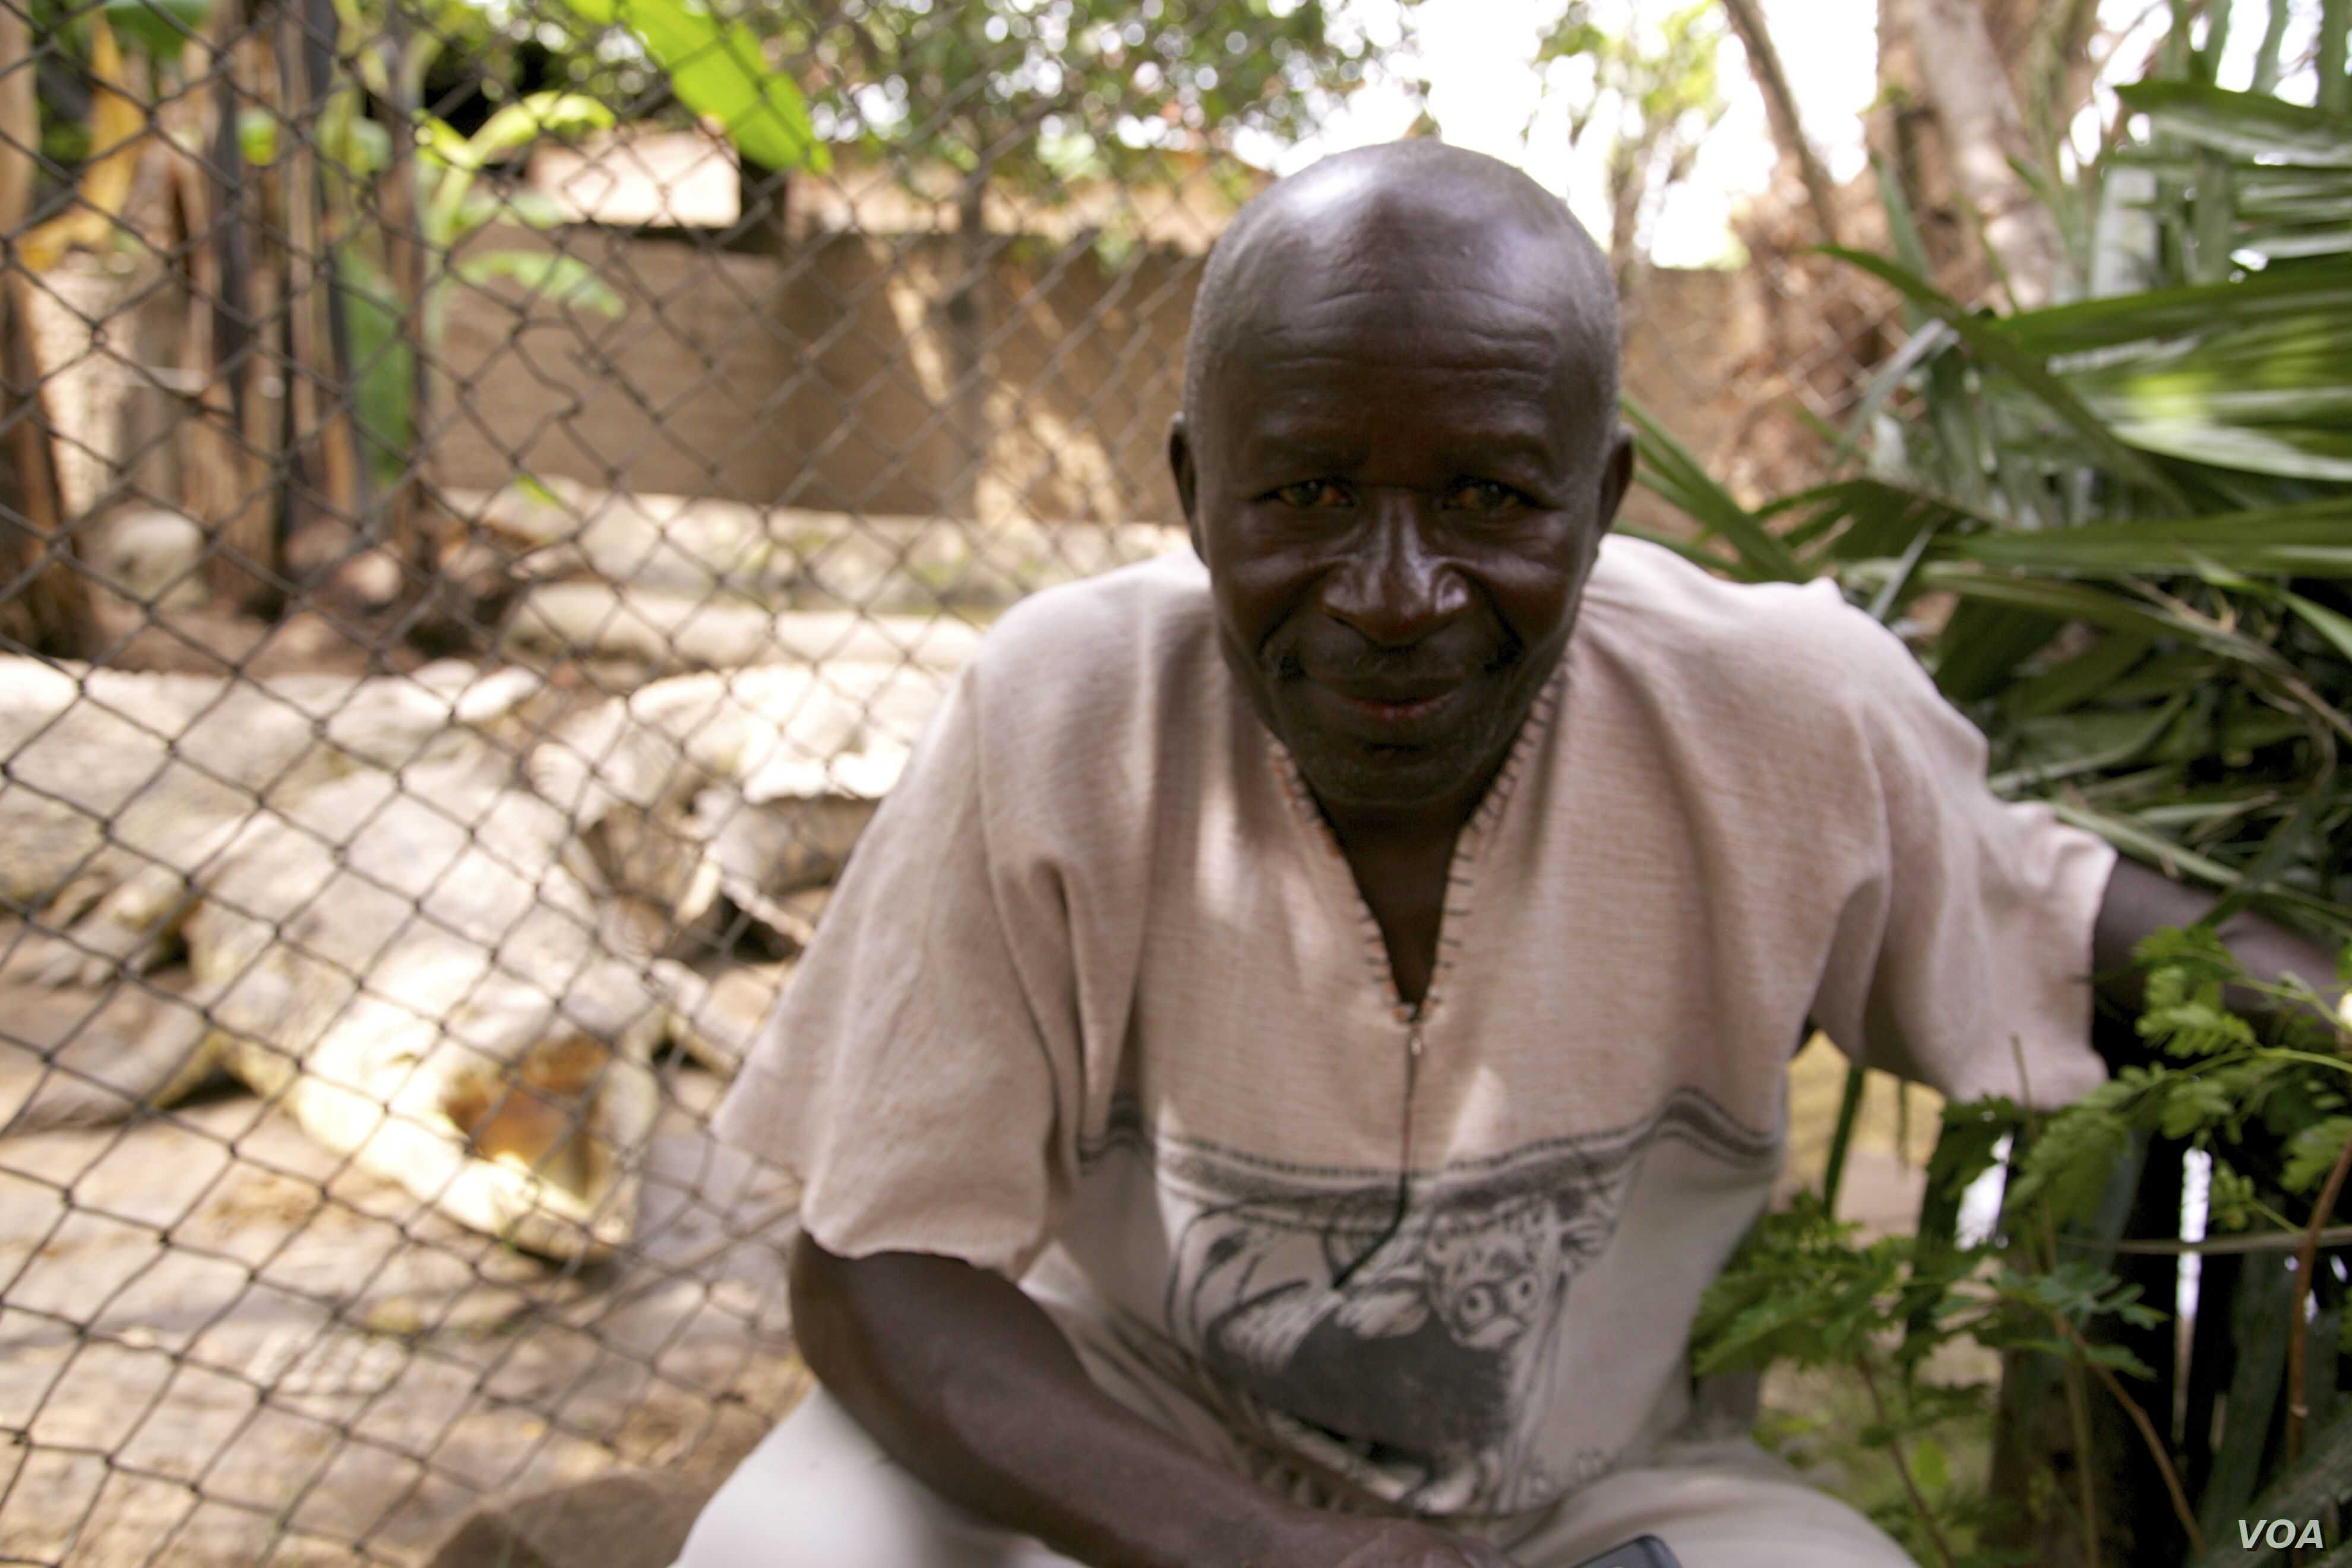 Burundian Albert  Ngendera poses with his pets, eight crocodiles that will soon become over 40 and no longer fit on his porch. (VOA / H. McNeish)